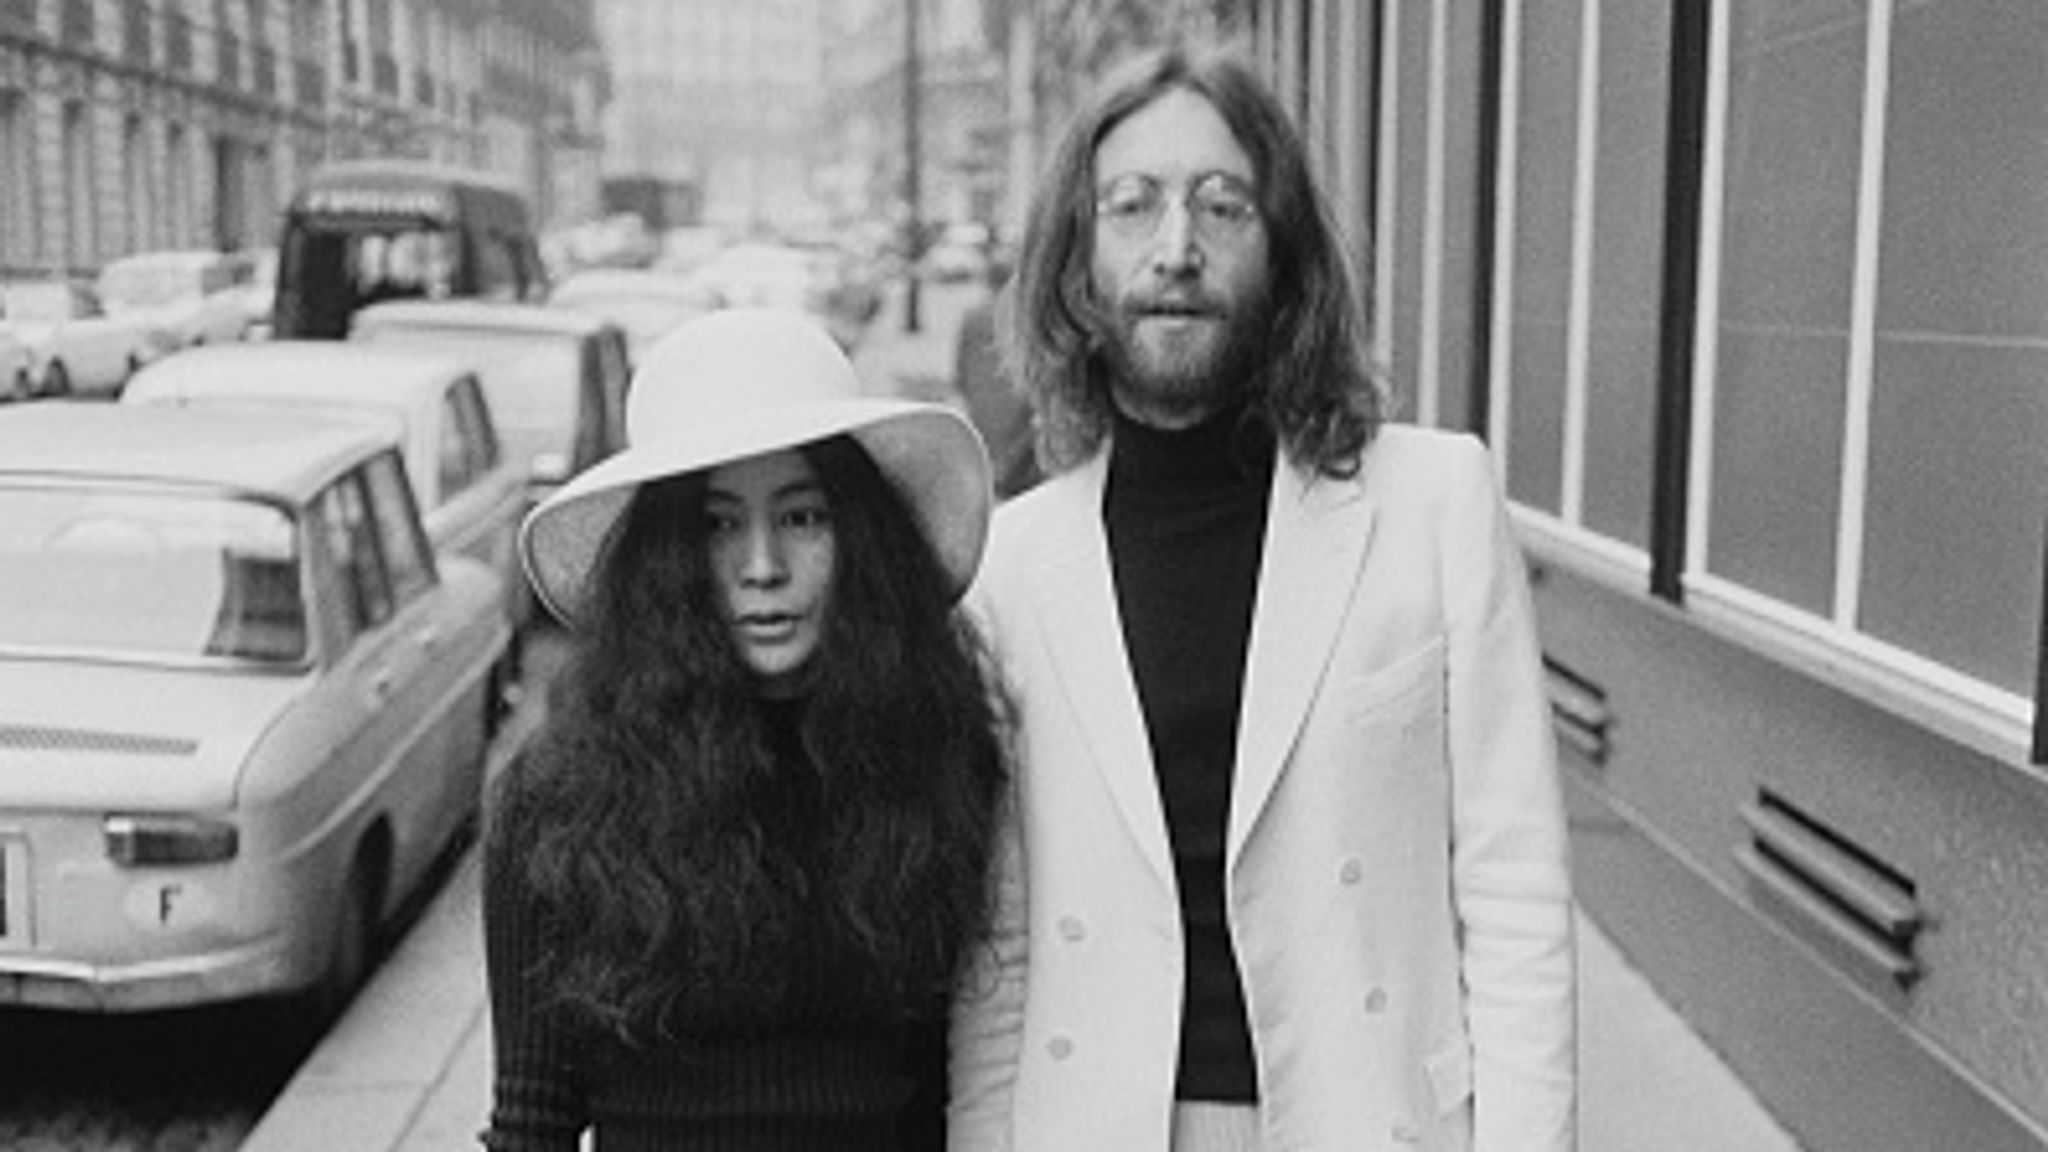 John Lennon S Killer Apologises To His Widow Yoko Ono For Despicable Crime He Committed For Self Glory Us News Sky News